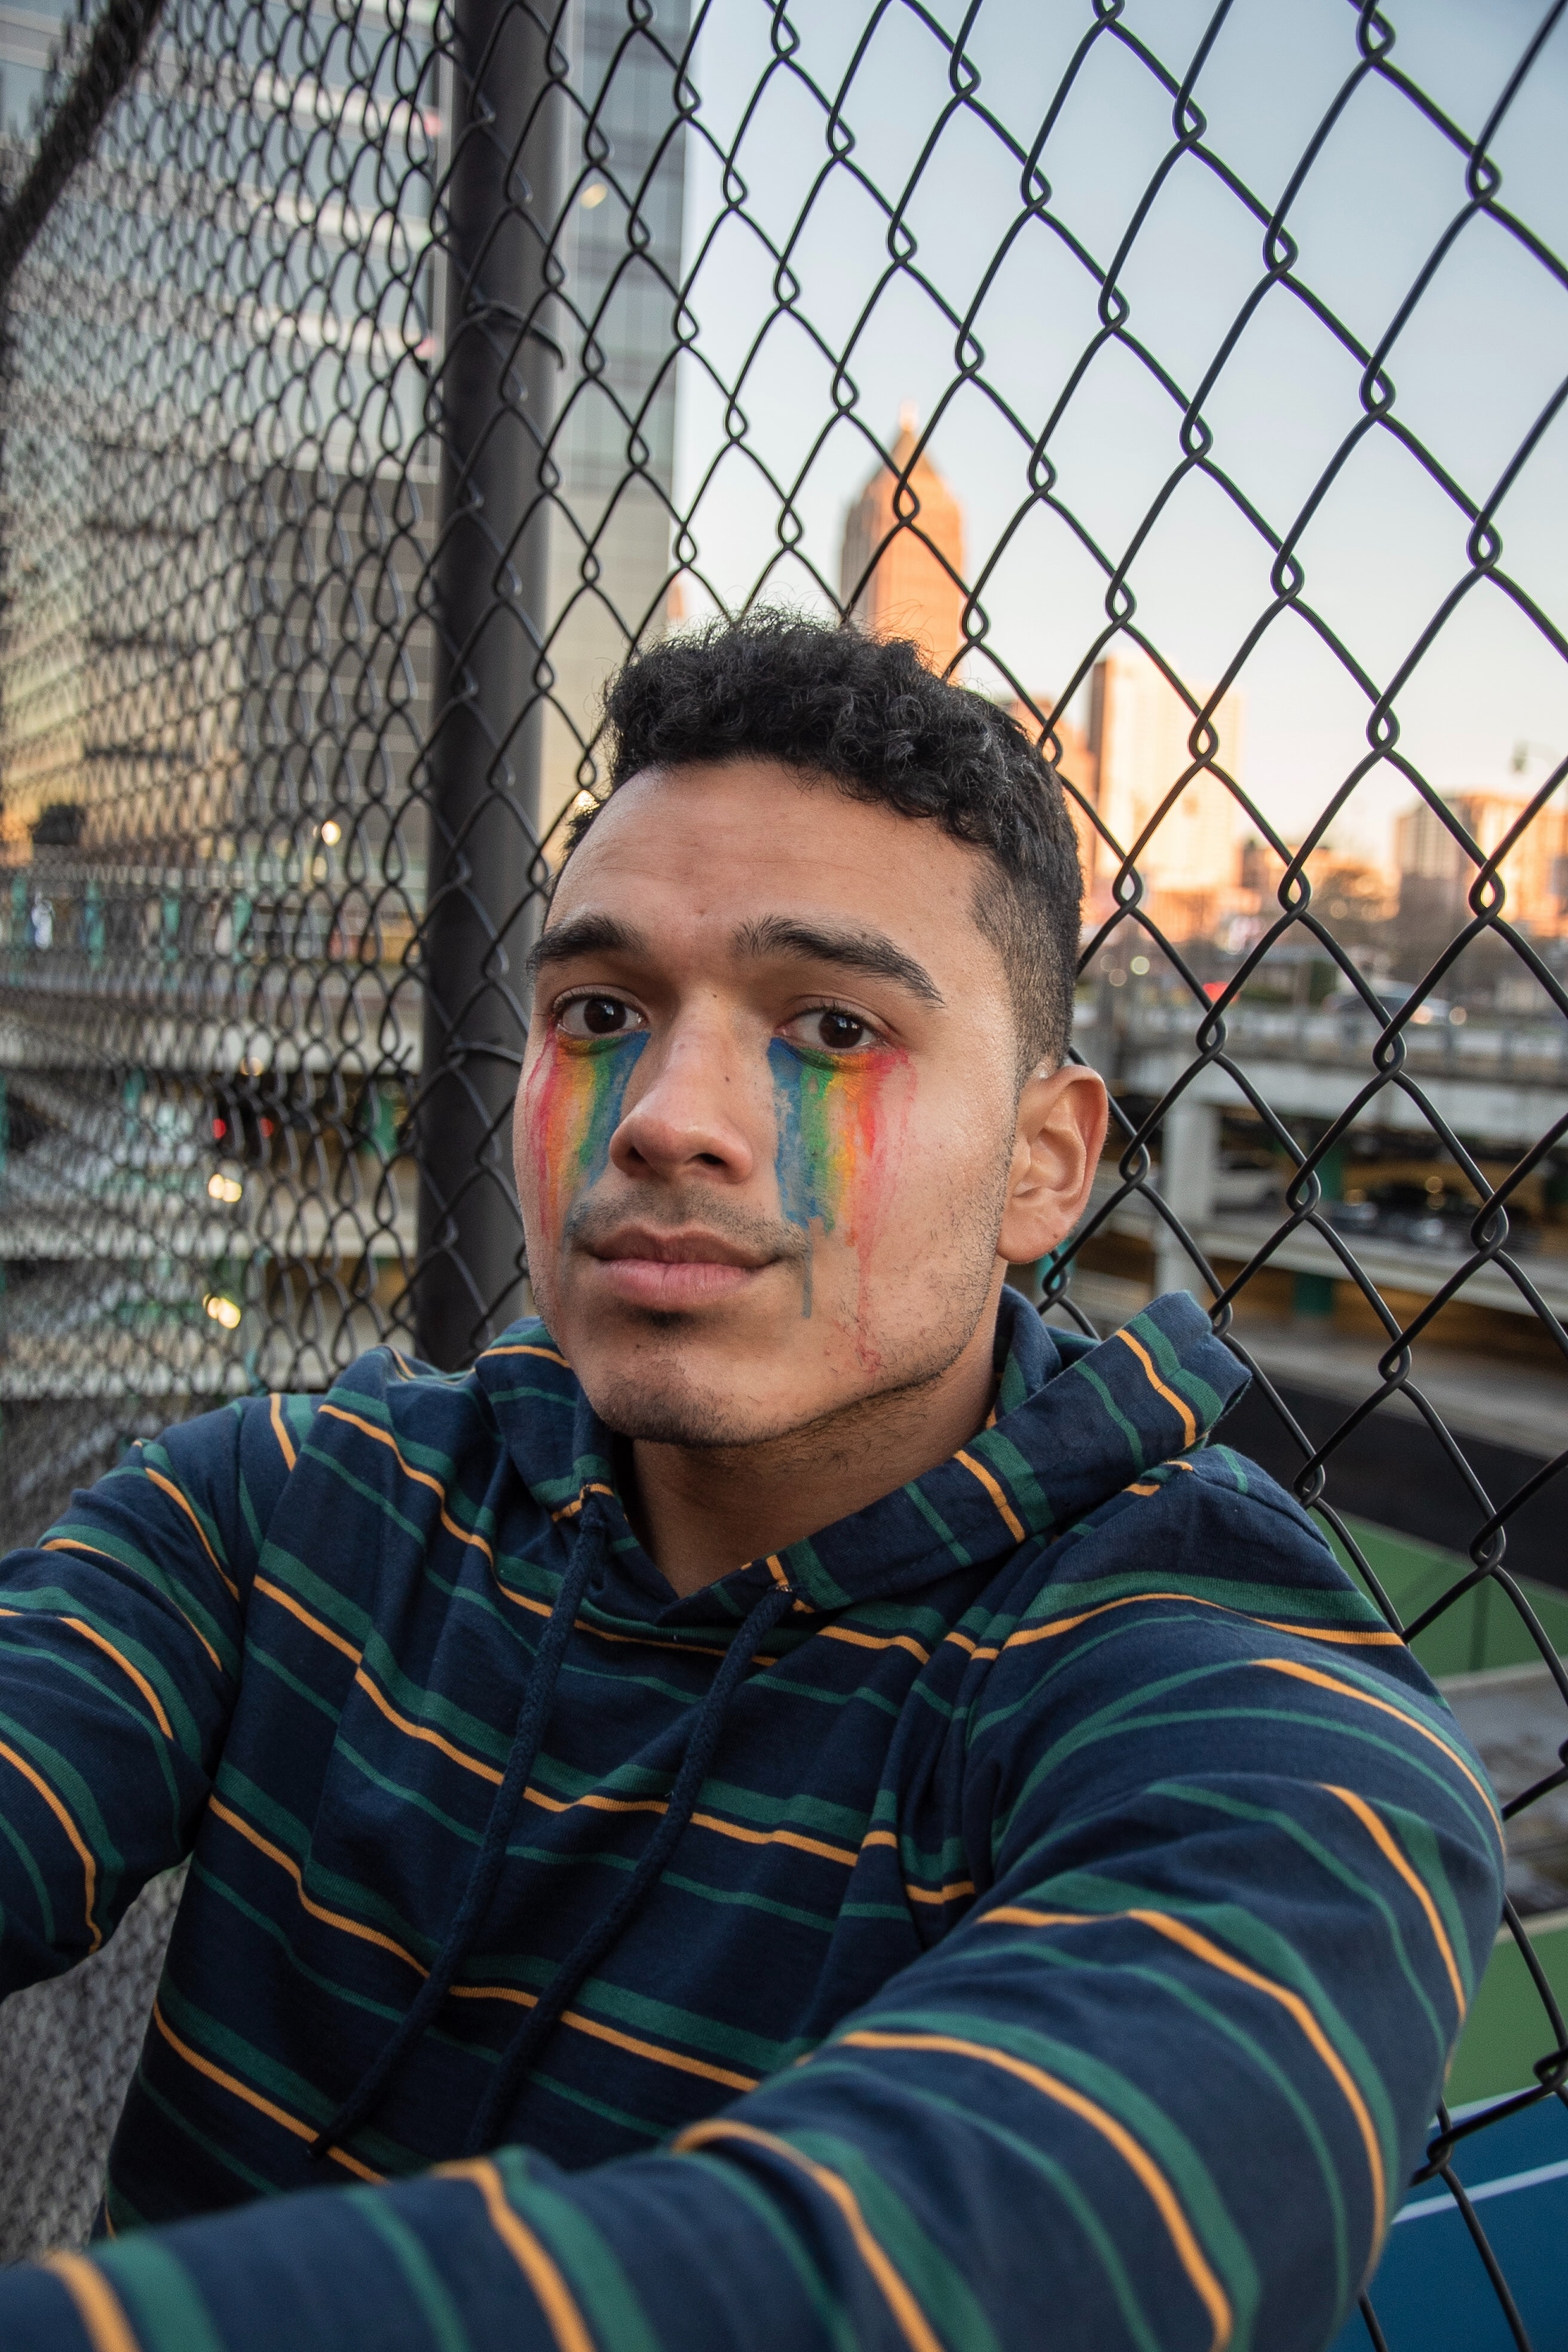 Yougn Hispanic man wearing a striped hoodie and rainbow face paint beneath his eyes